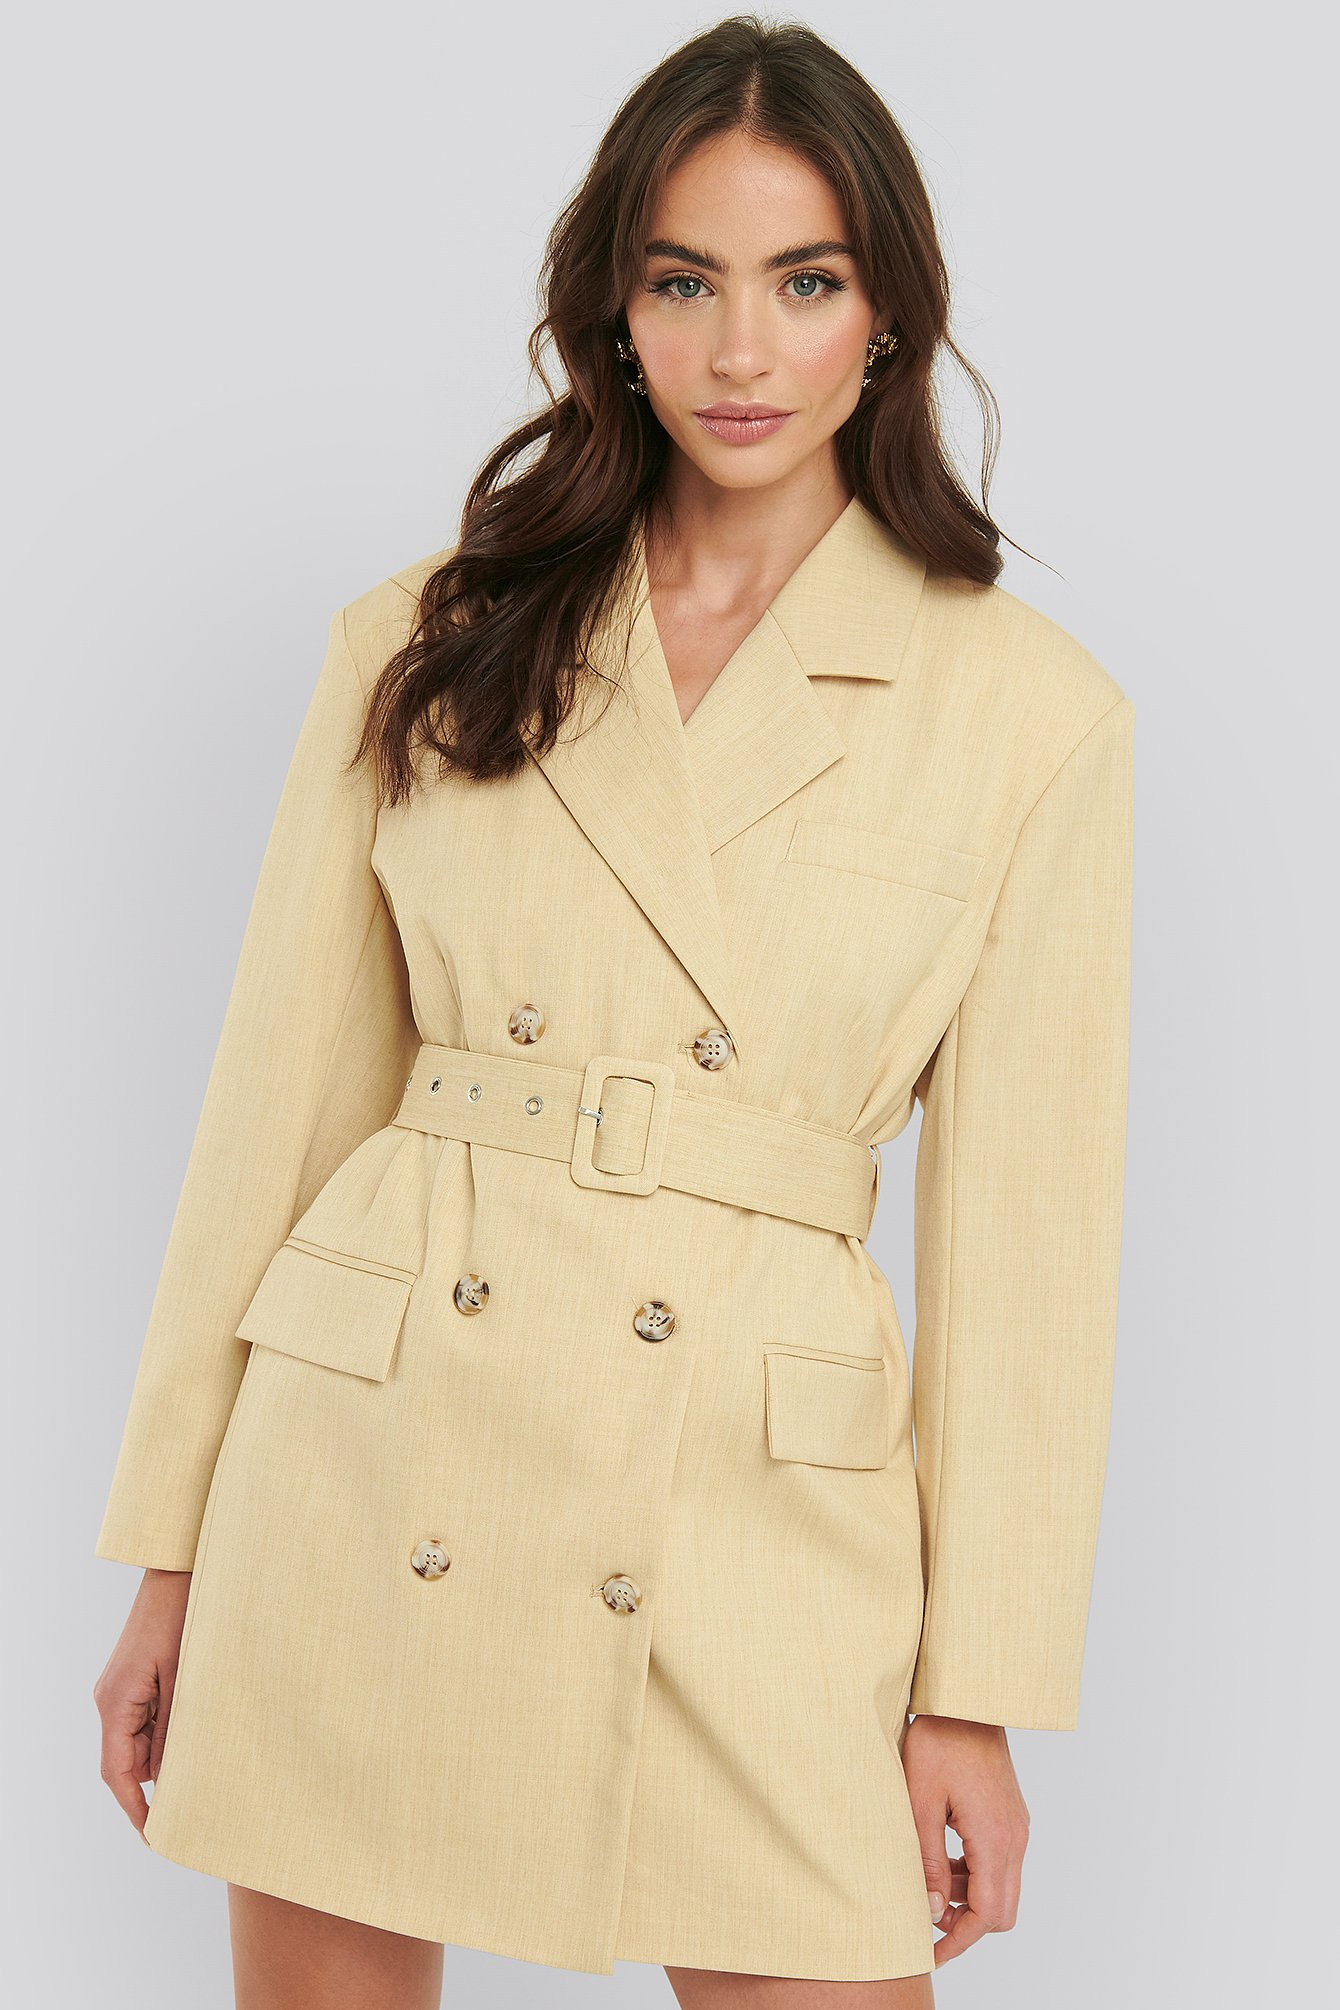 na-kd classic -  Wide Shoulder Belted Blazer Dress - Yellow